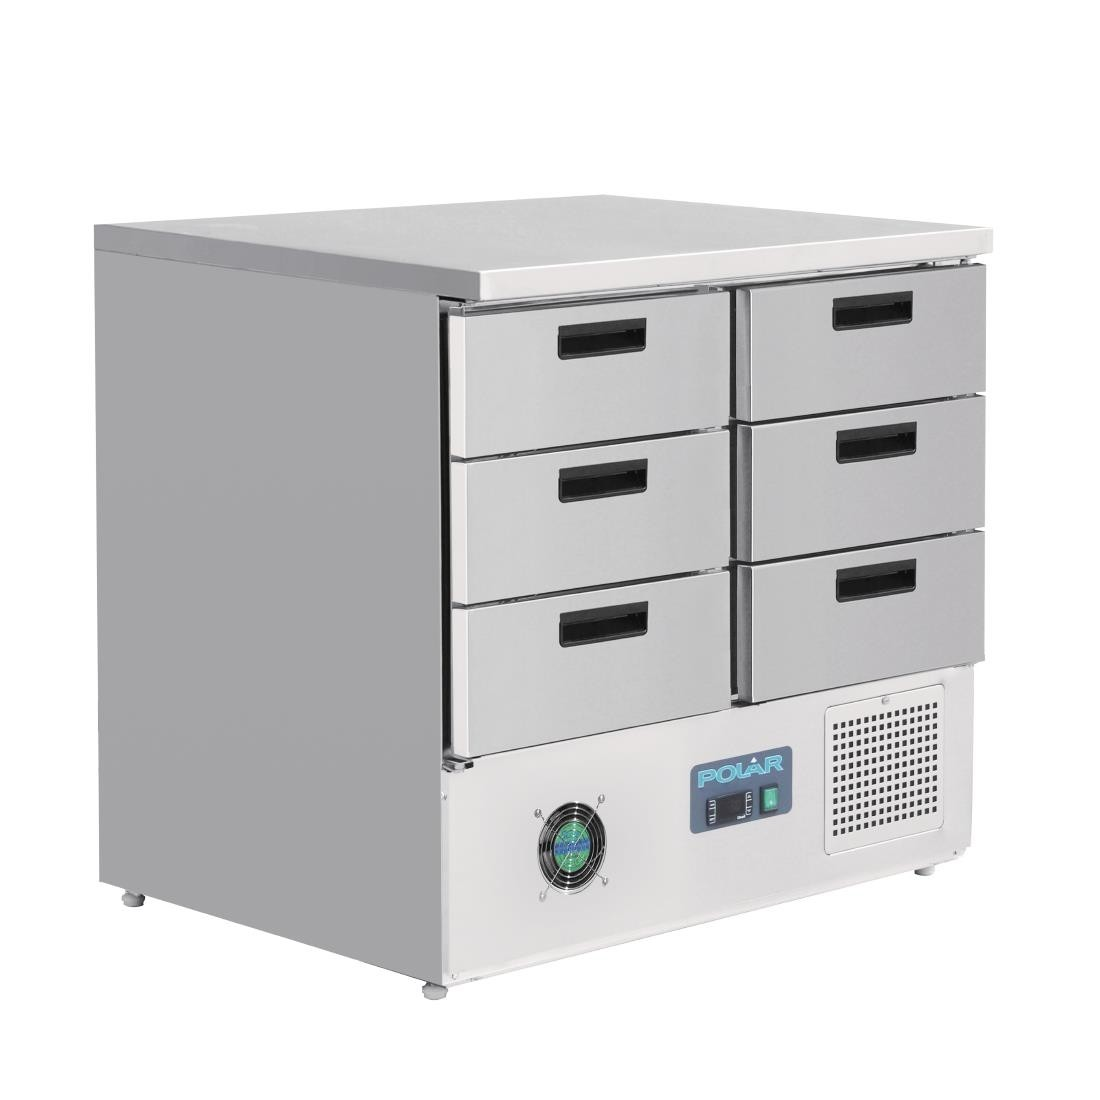 Polar FA440 G-Series Refrigerated Counter with 6 Drawers